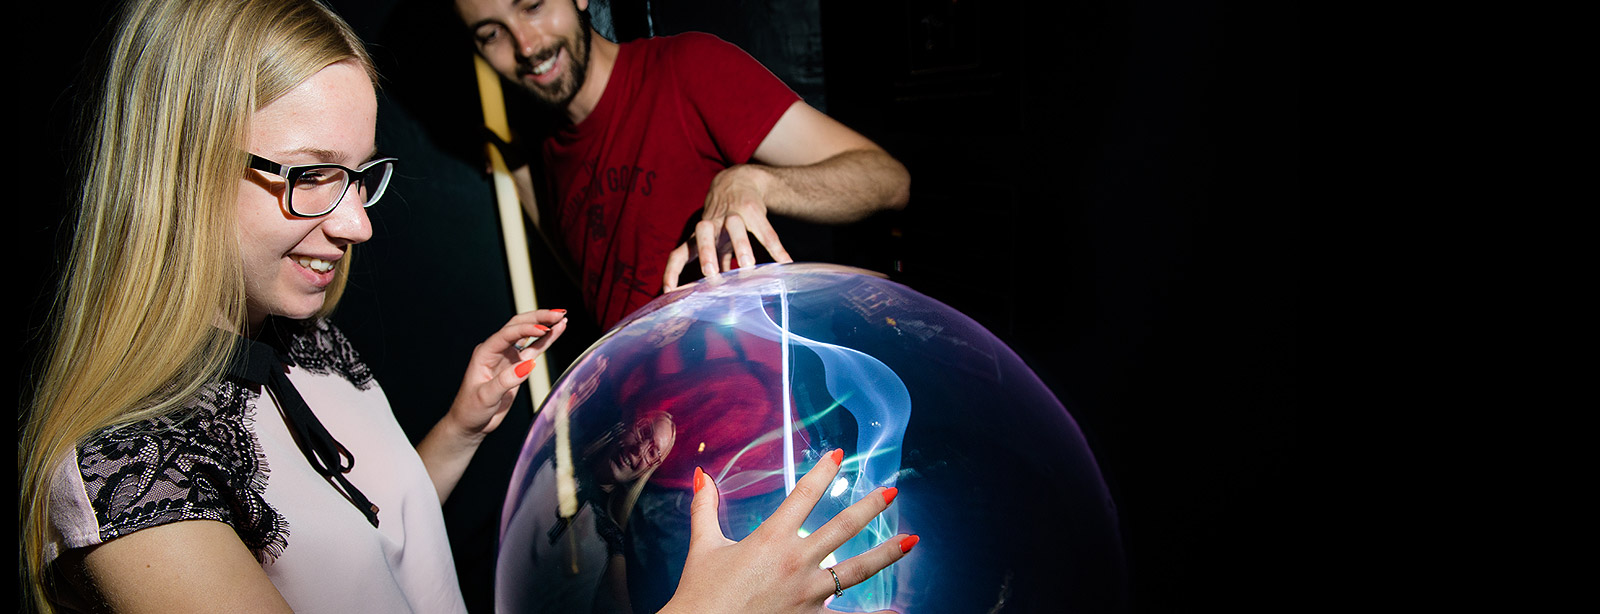 Camera Obscura and World of Illusions - Attractions